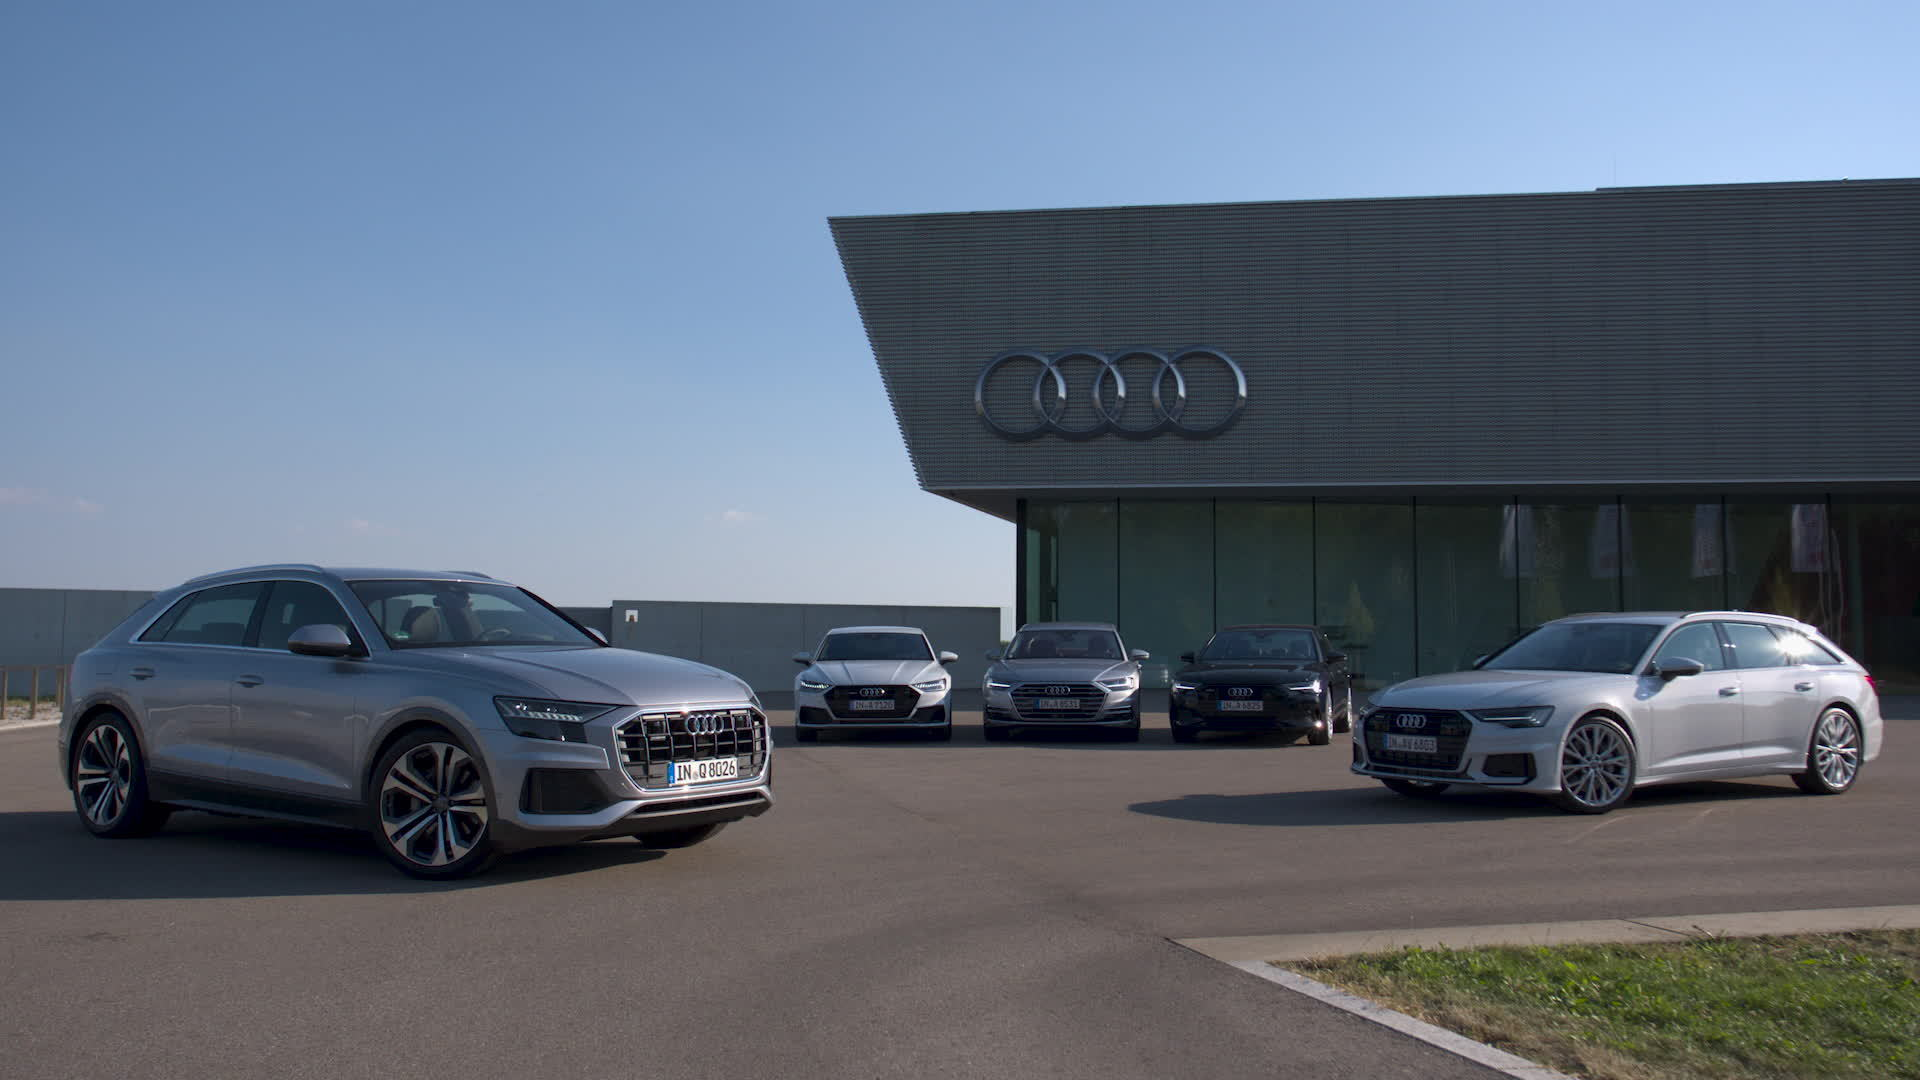 The new Audi full-size class